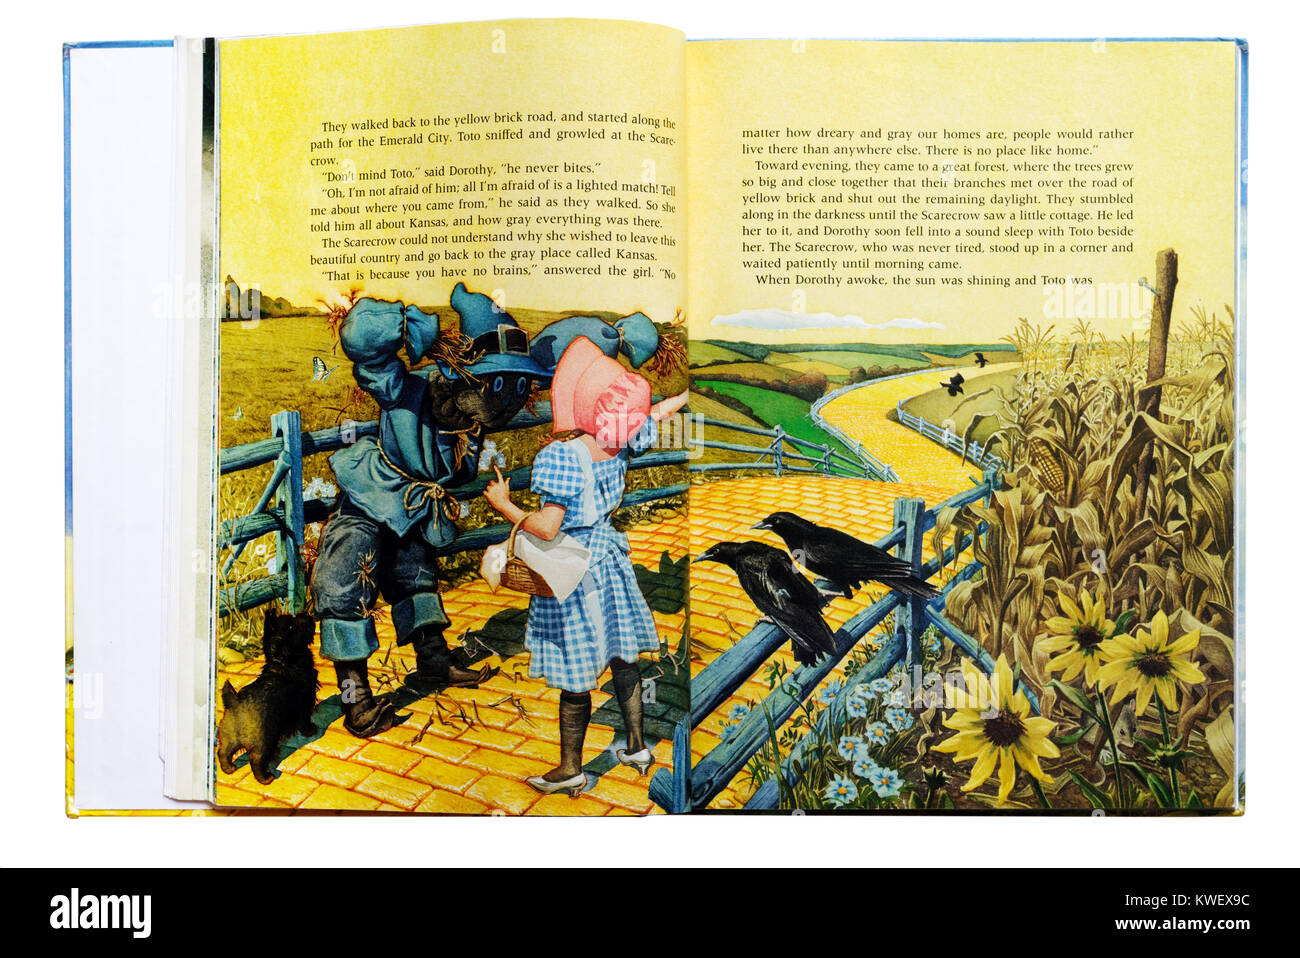 Dorothy and Scarecrow on the Yellow Brick Road in an Illustrated book of The Wizard of Oz - Stock Image